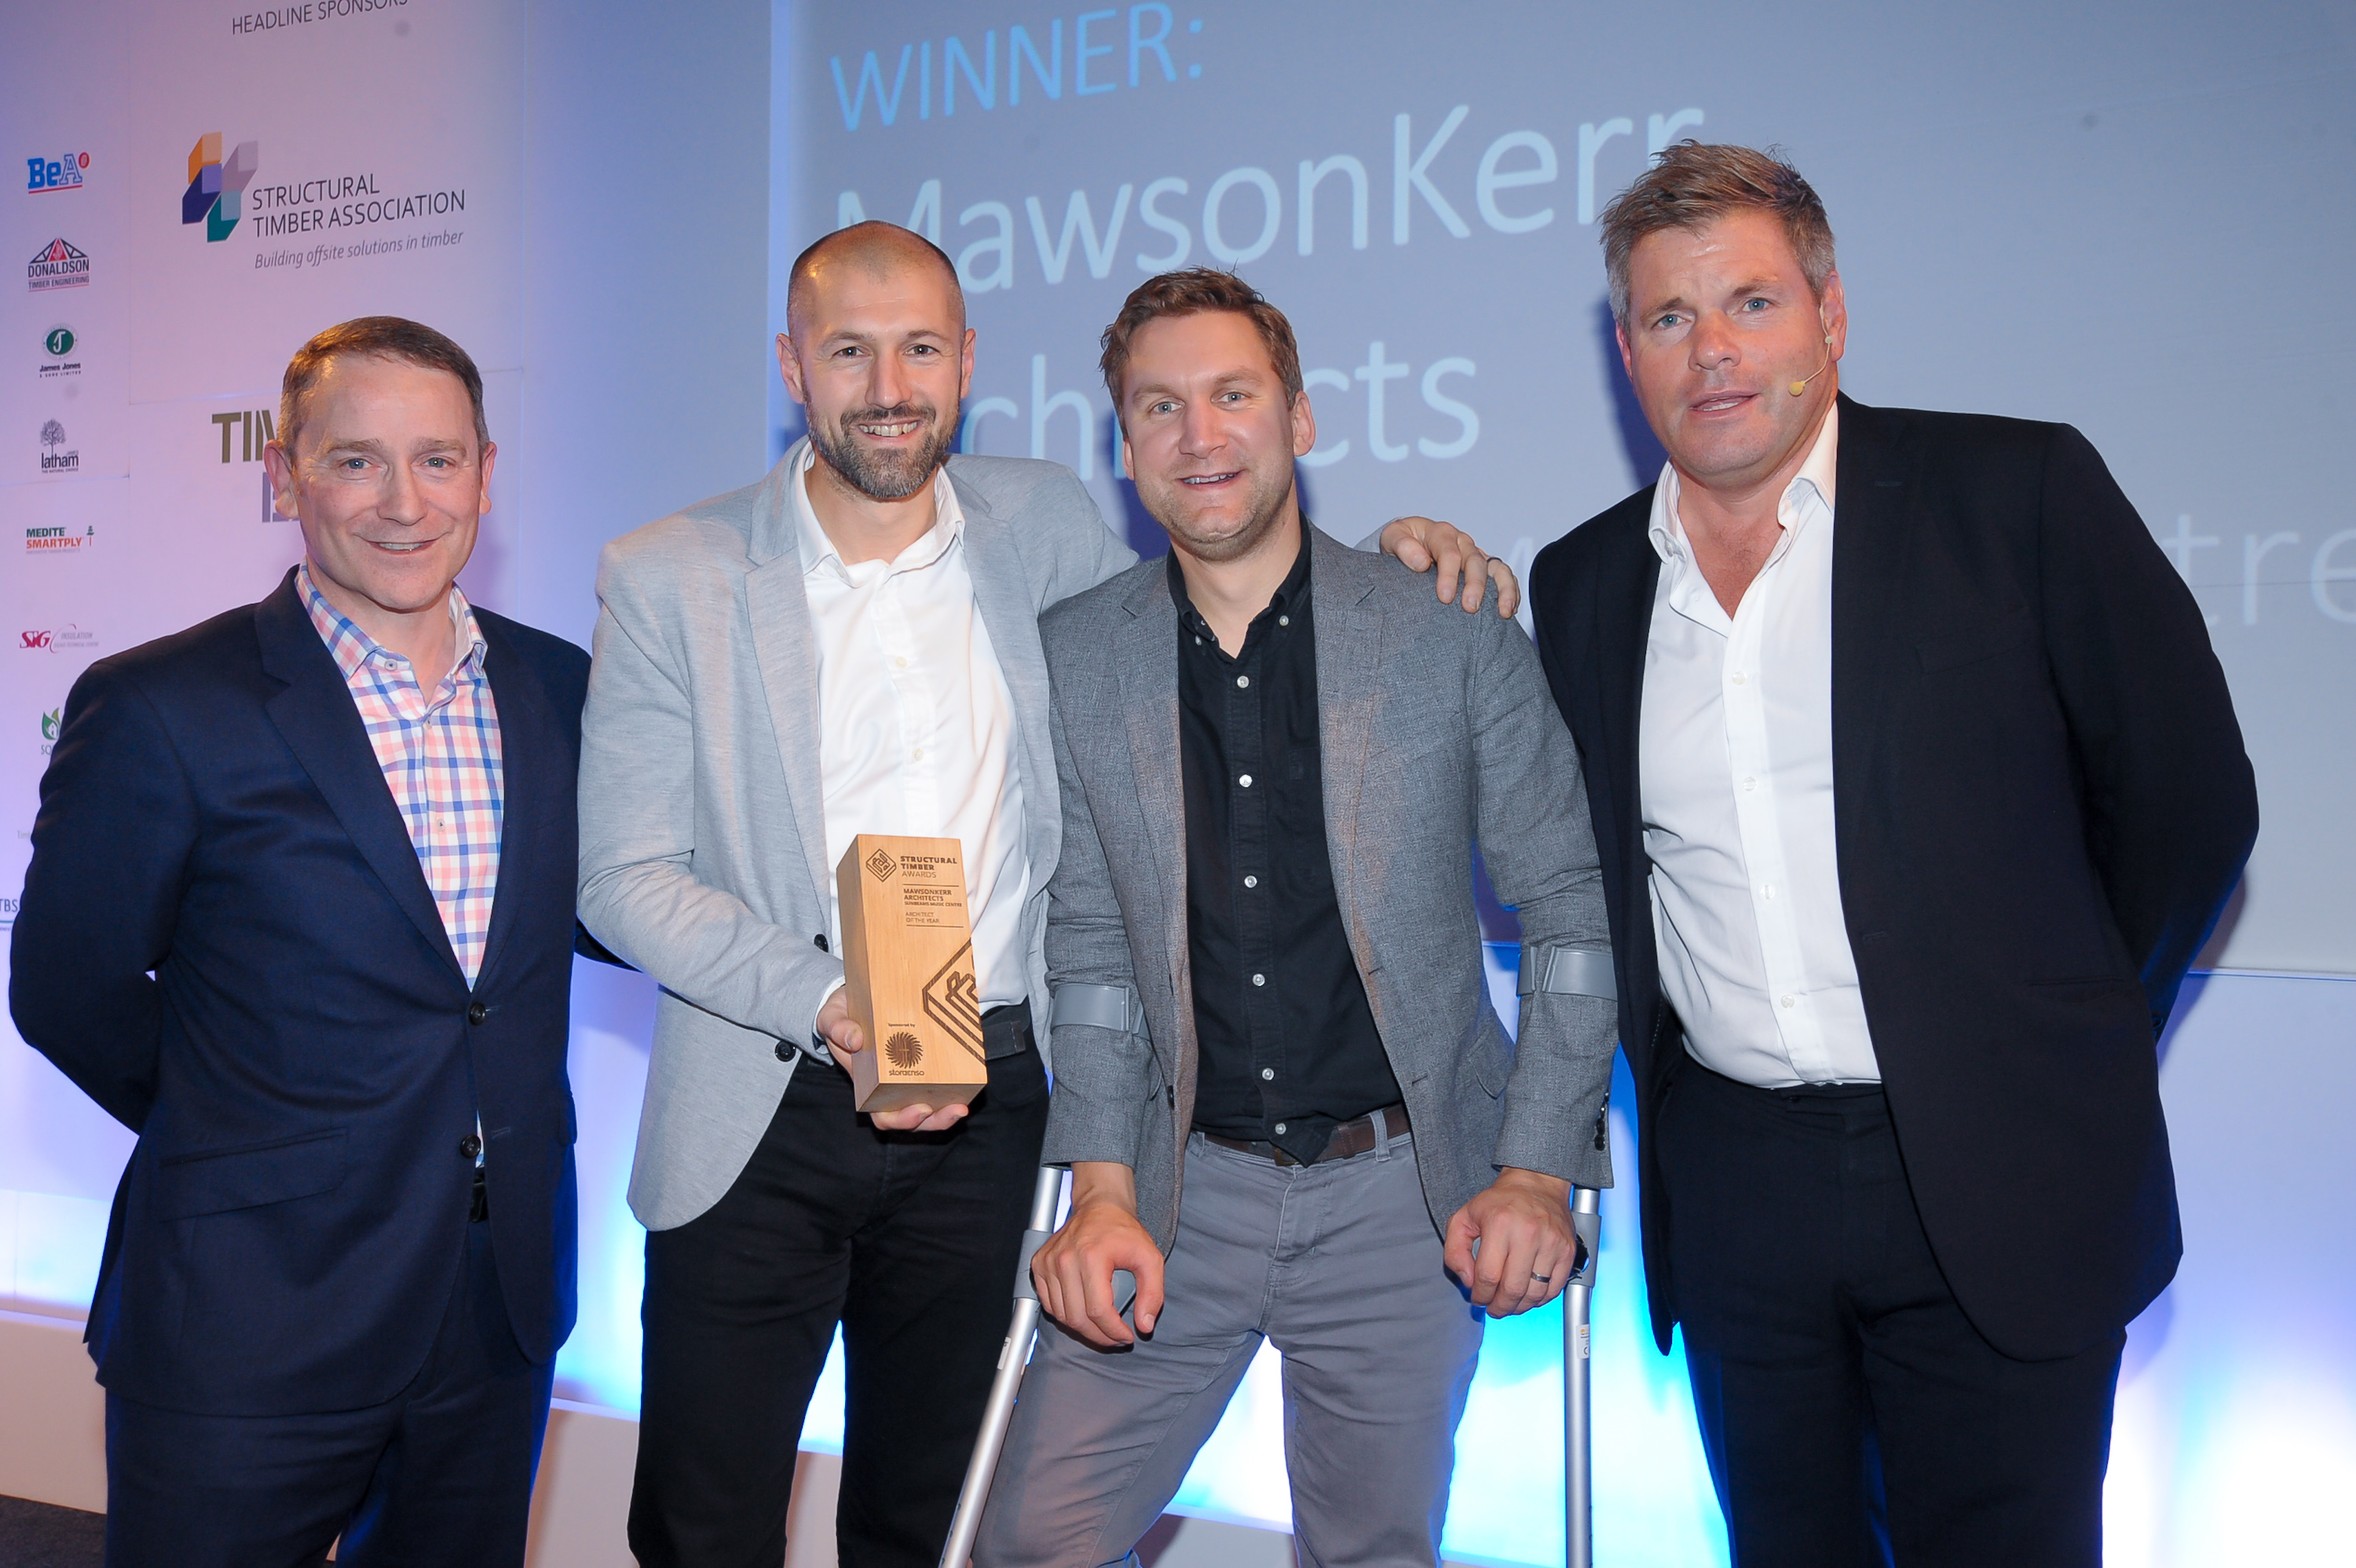 sta_awards_11.10.17___131_of_229_